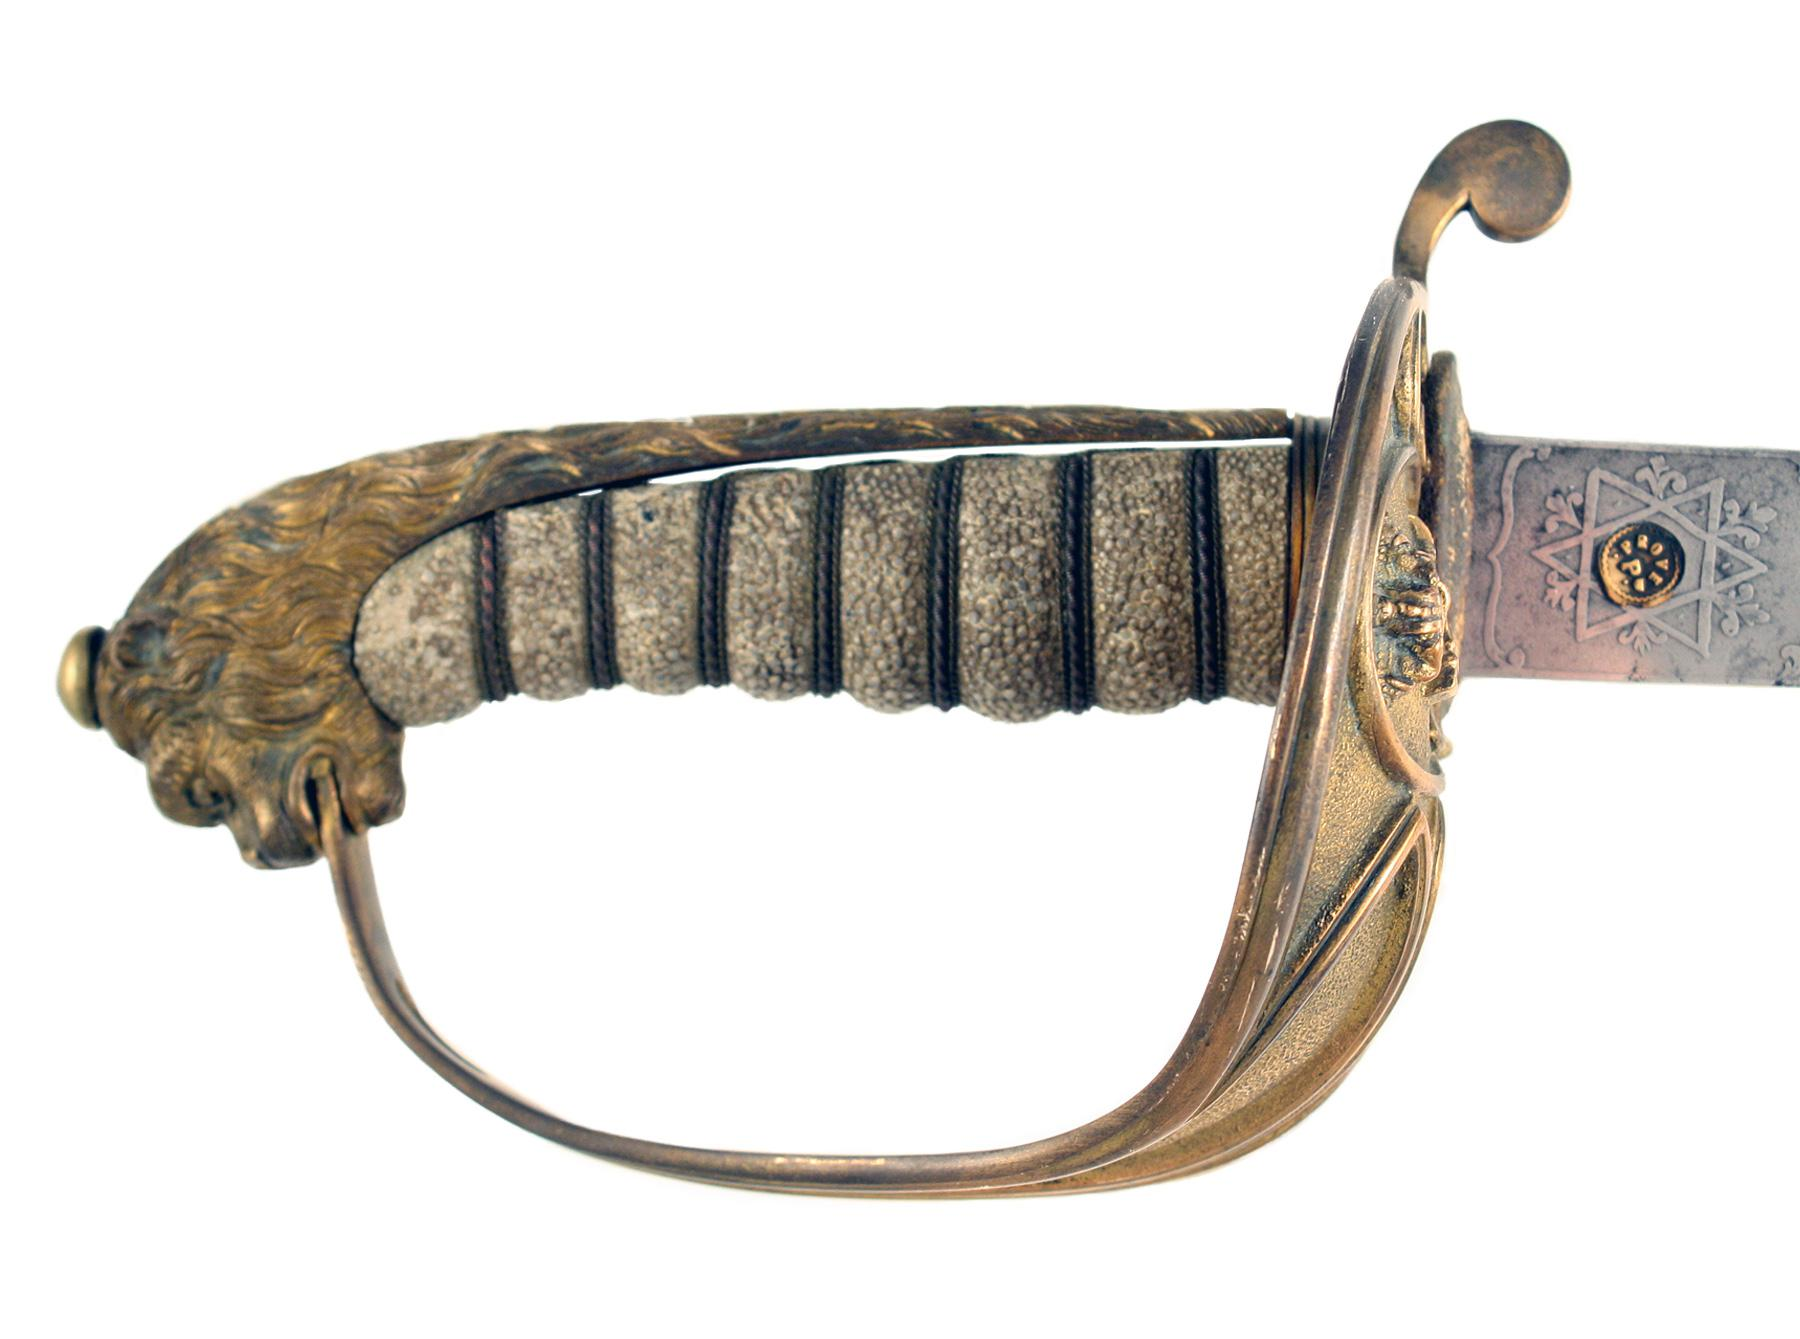 A Customs Officers Presentation Sword